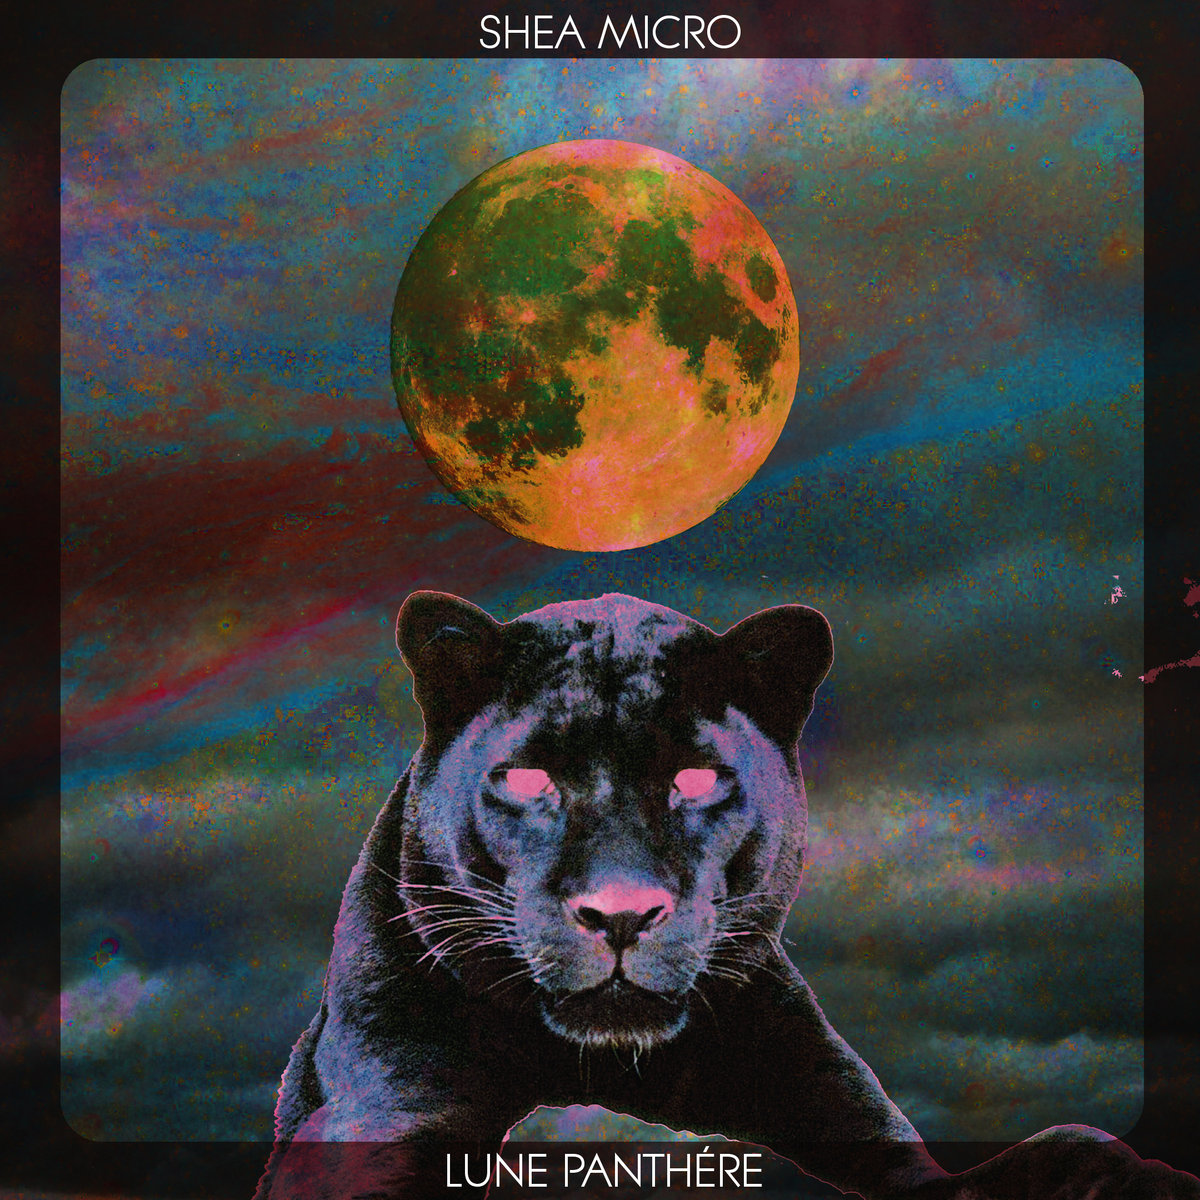 Shea Micro - Lune Panthére